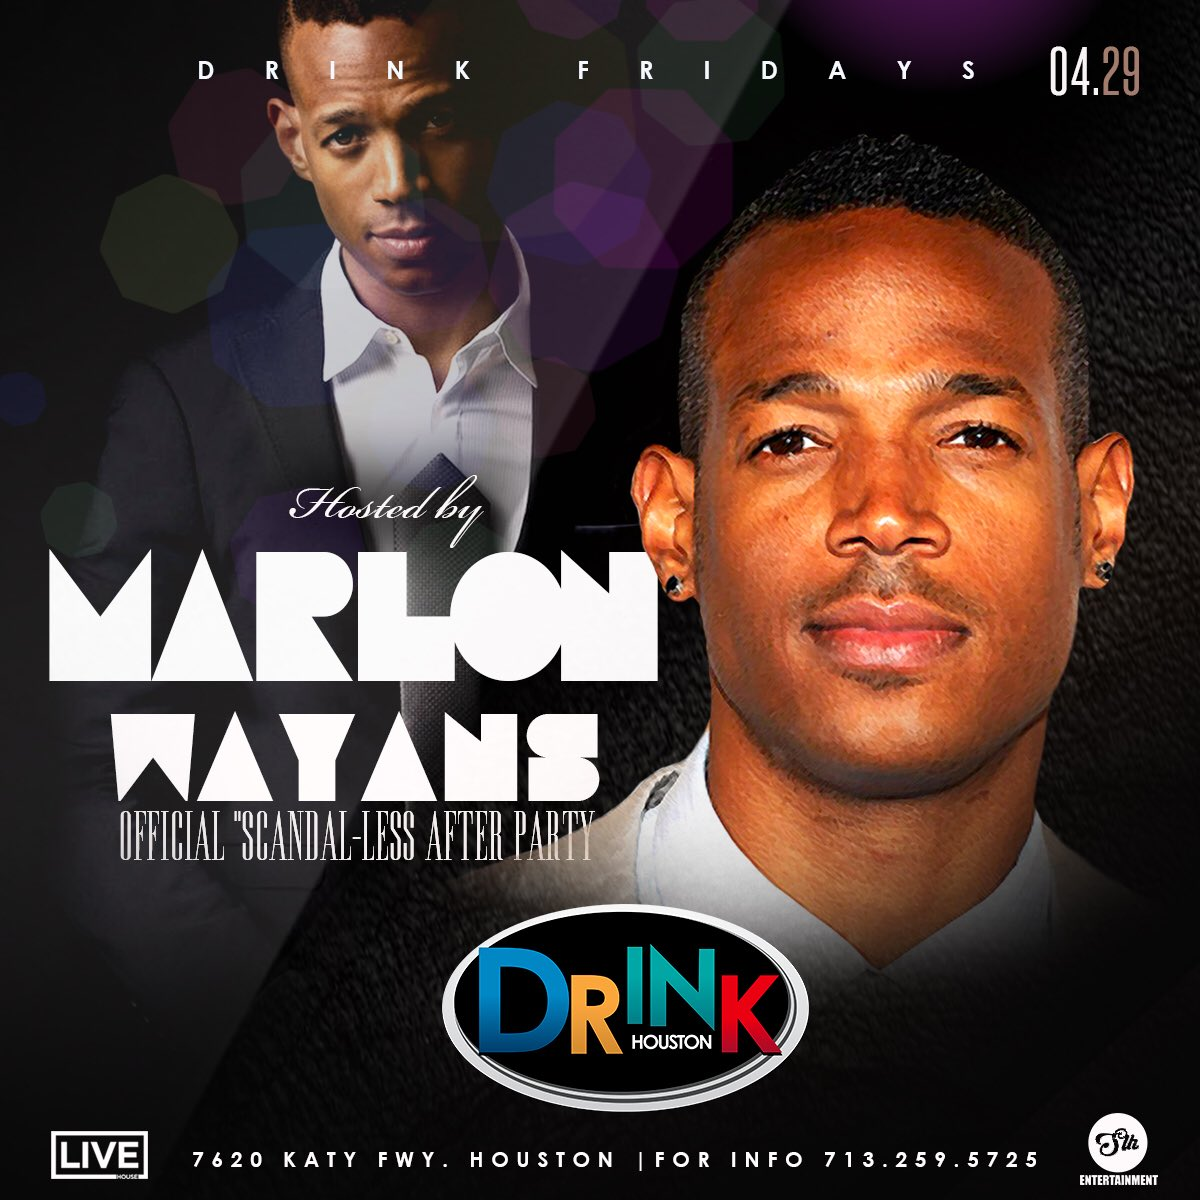 @MarlonWayans after party this Friday night at #DrinkHouston!!